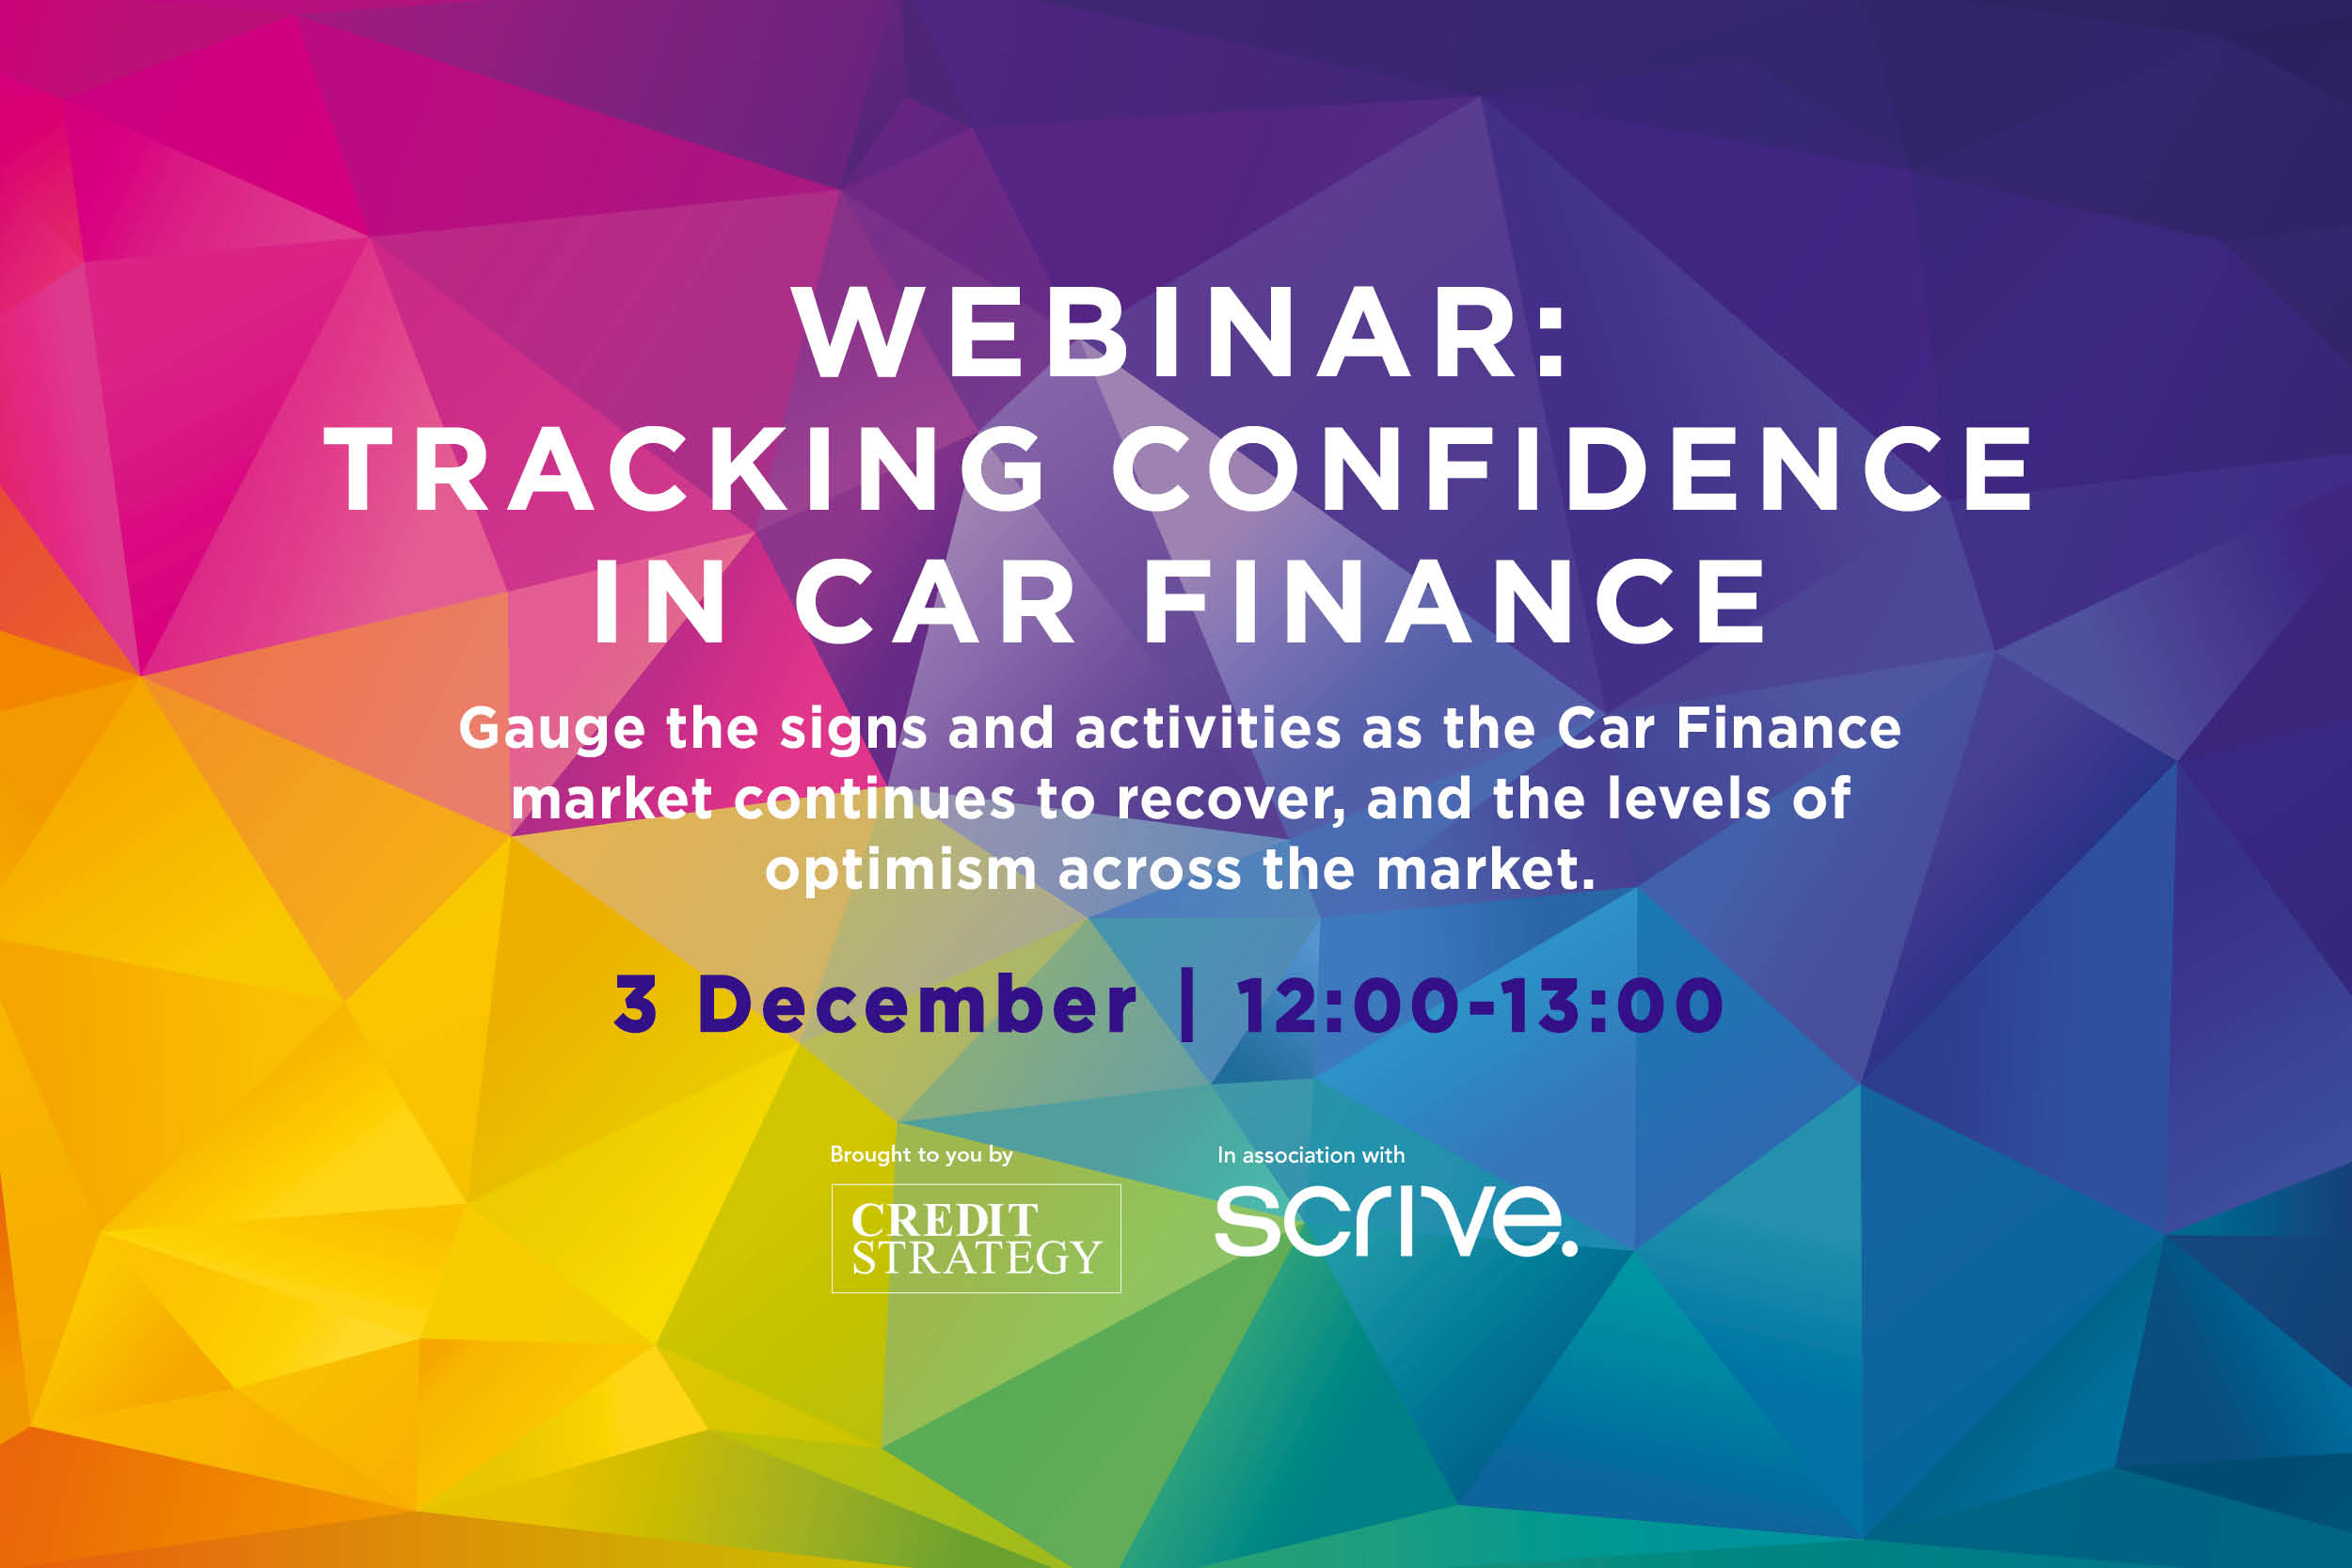 Tracking confidence in Car Finance webinar